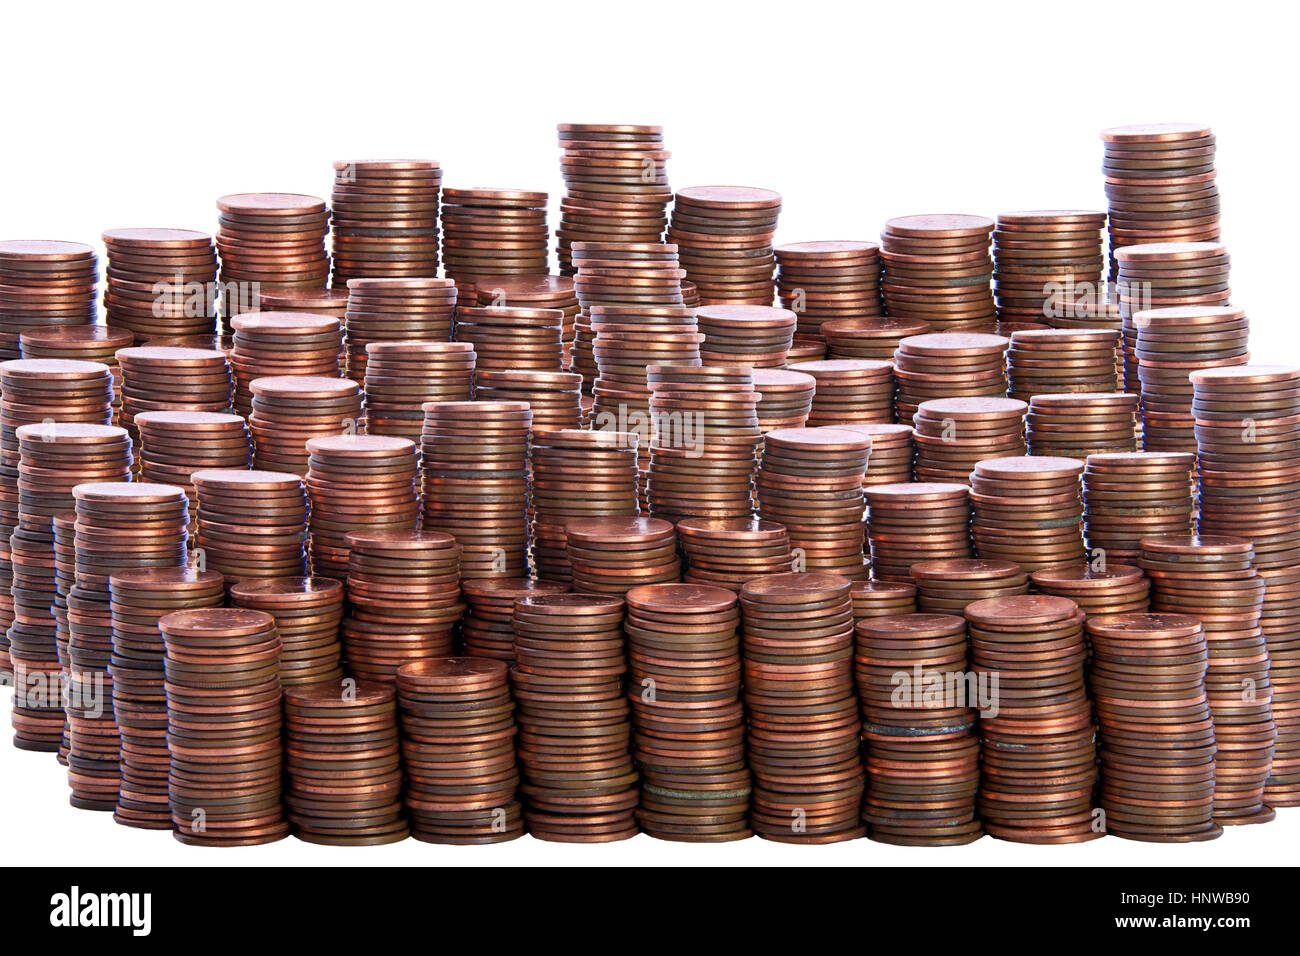 multiple stacks of old dirty pennies. bronze and copper pennies isolated on a white background Stock Photo